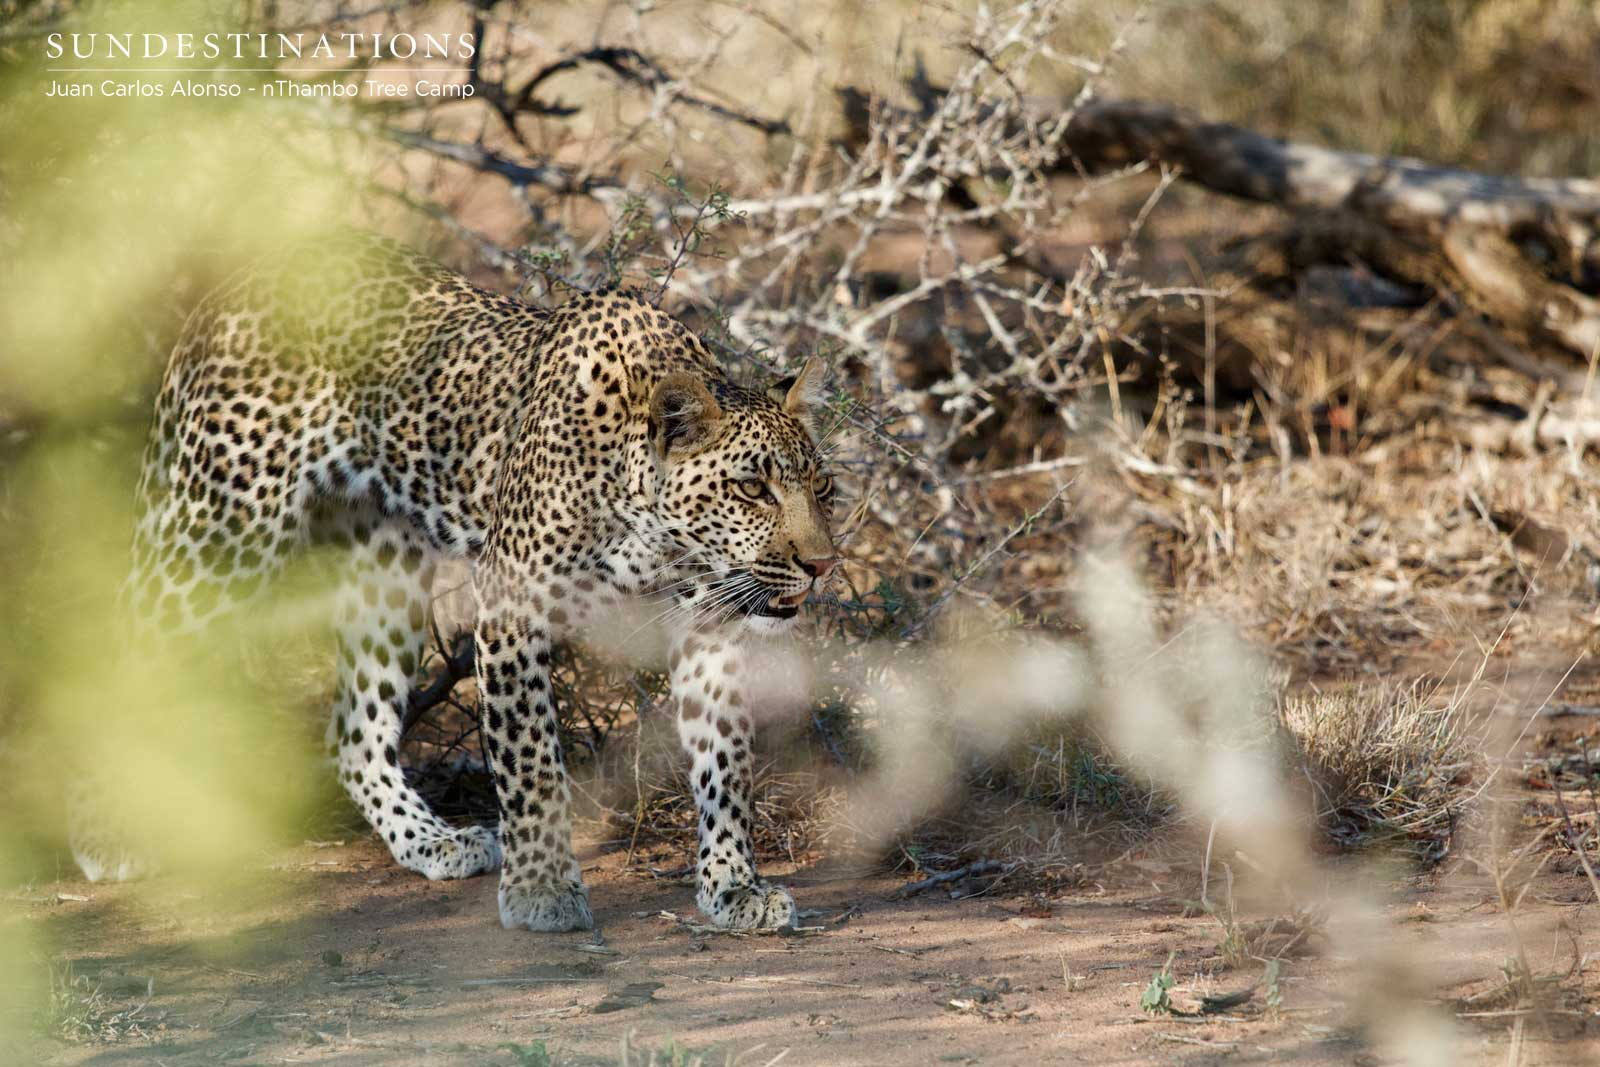 Nyeleti the Leopard